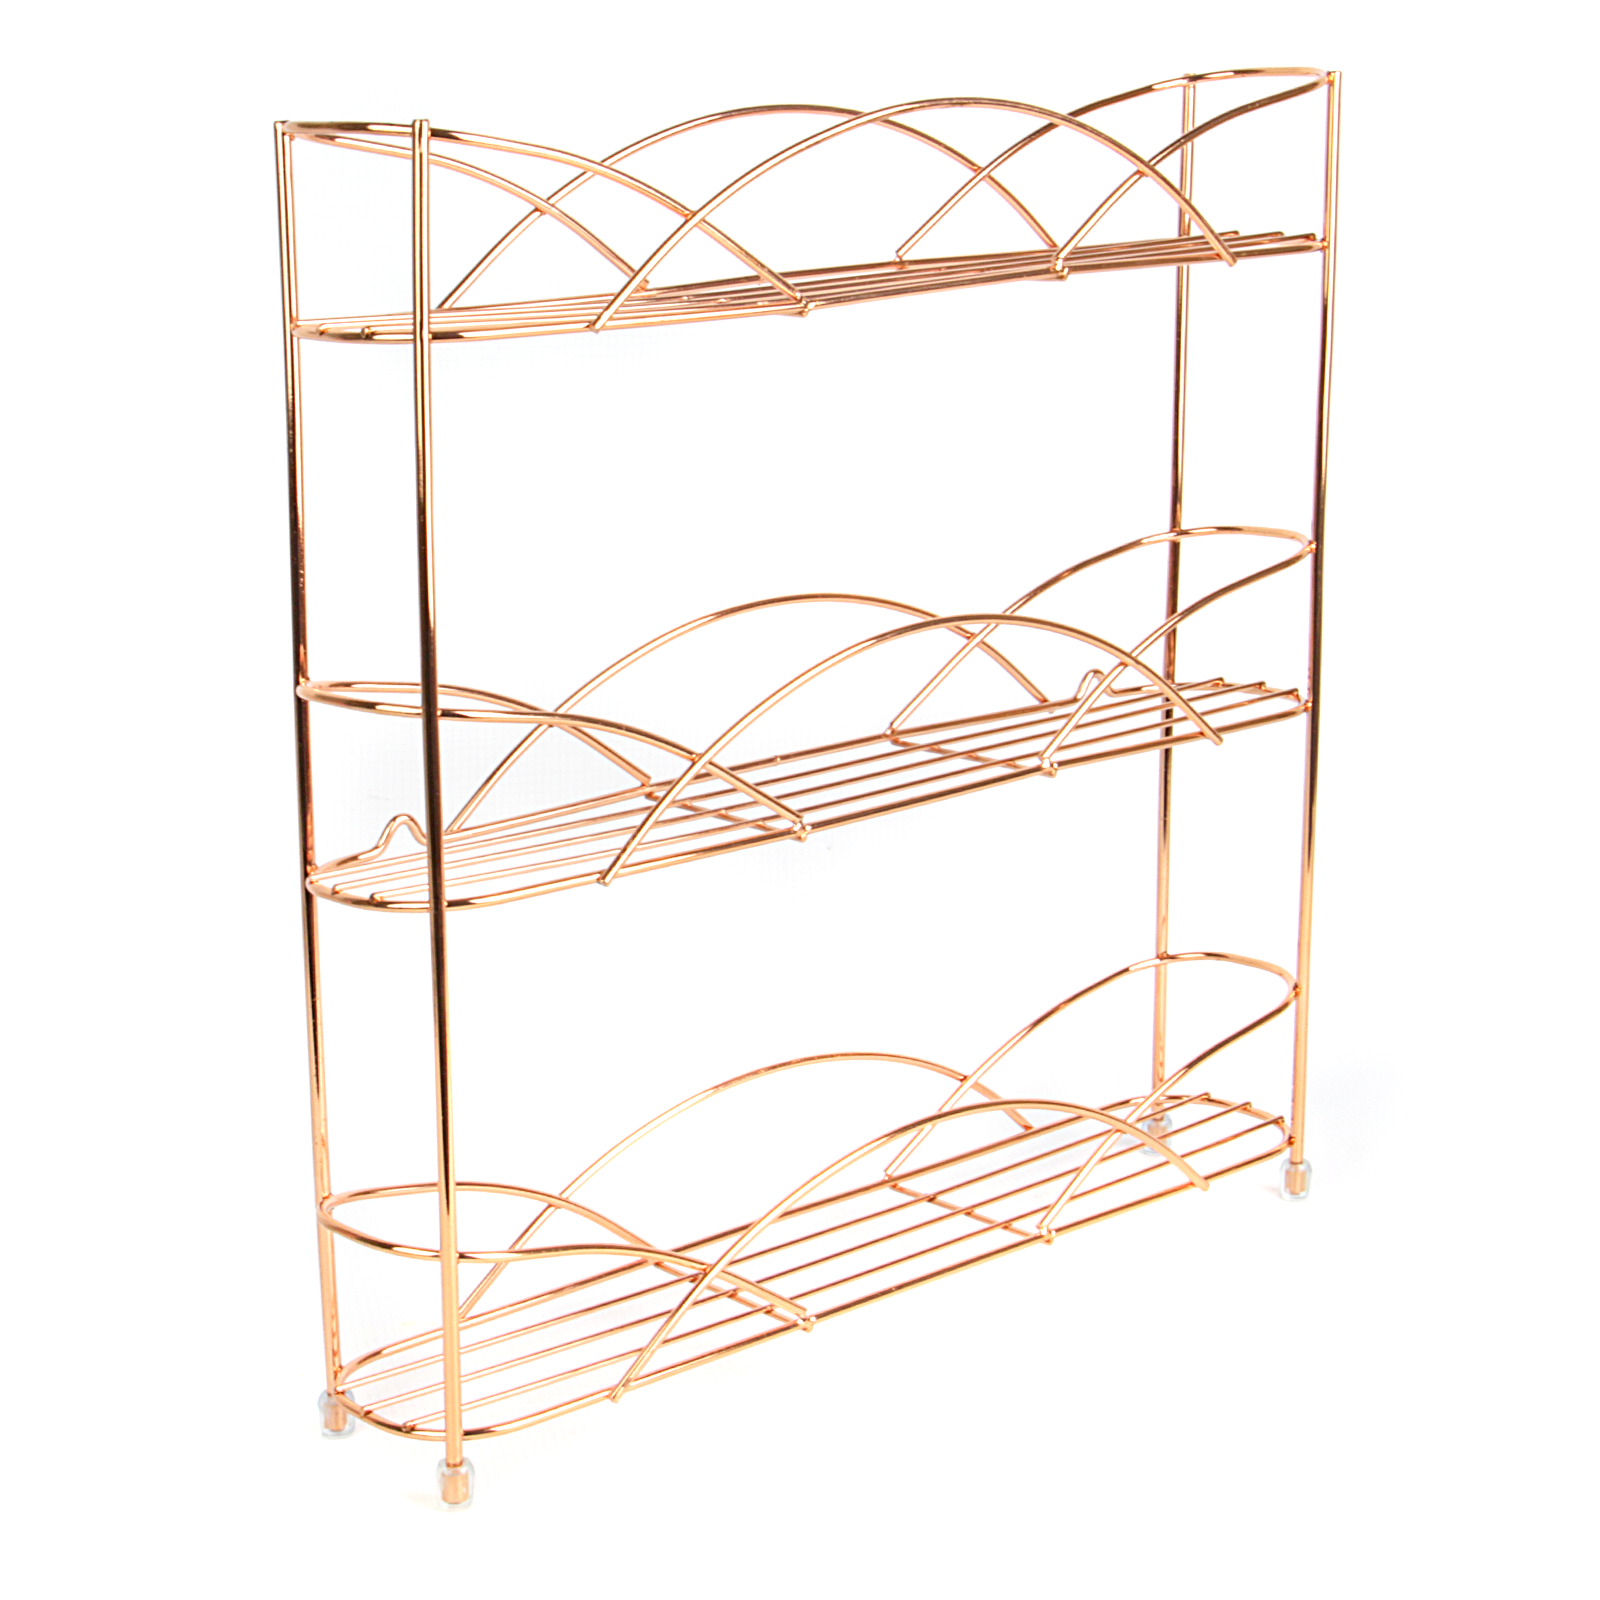 Free-Standing-3-Tier-Herb-amp-Spice-Rack-Non-slip-Universal-Fit-M-amp-W thumbnail 22